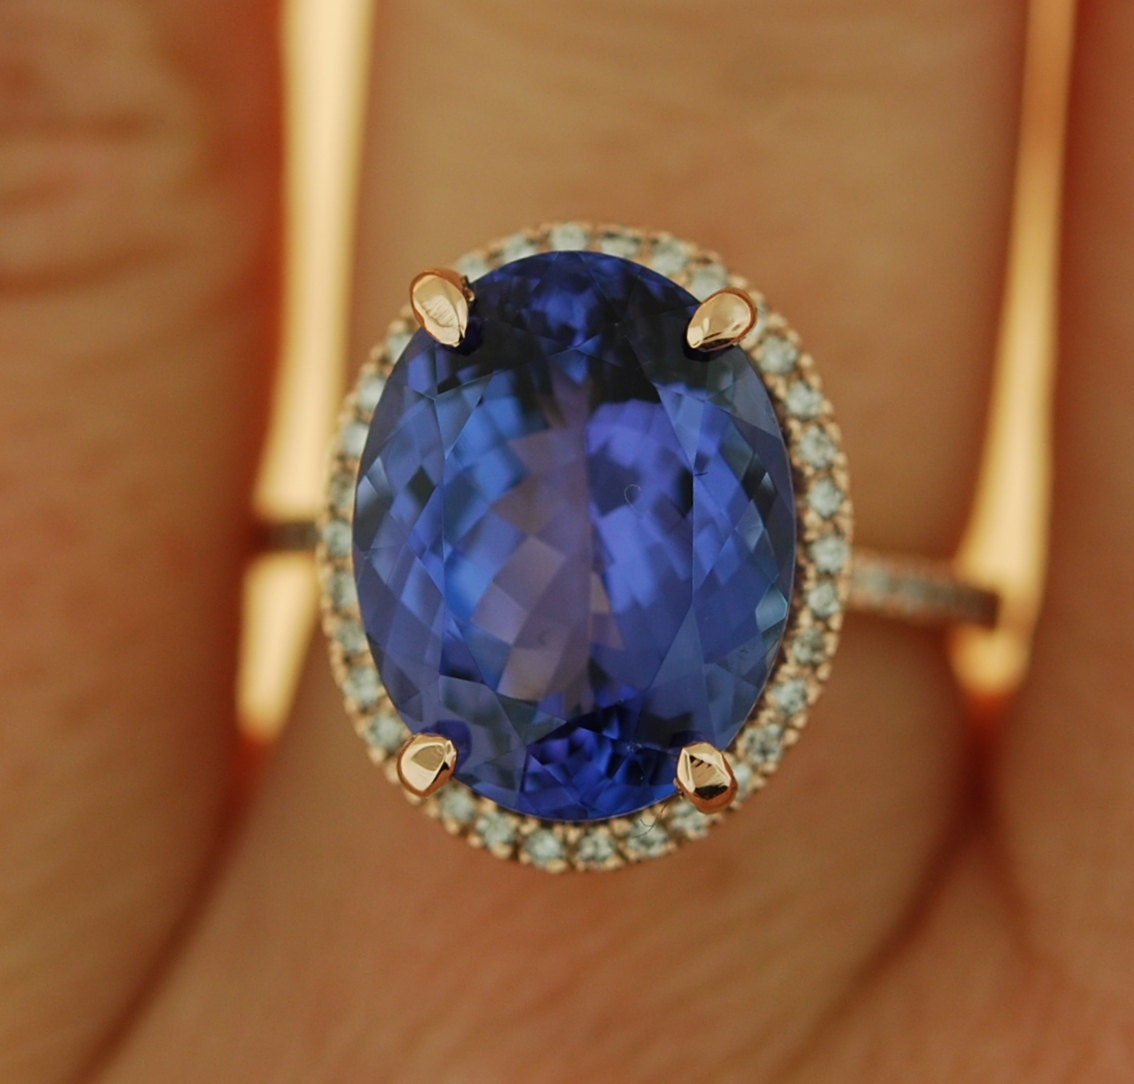 finland product rings en tanzanite tansaniitti ring gia with halosormus jubilee